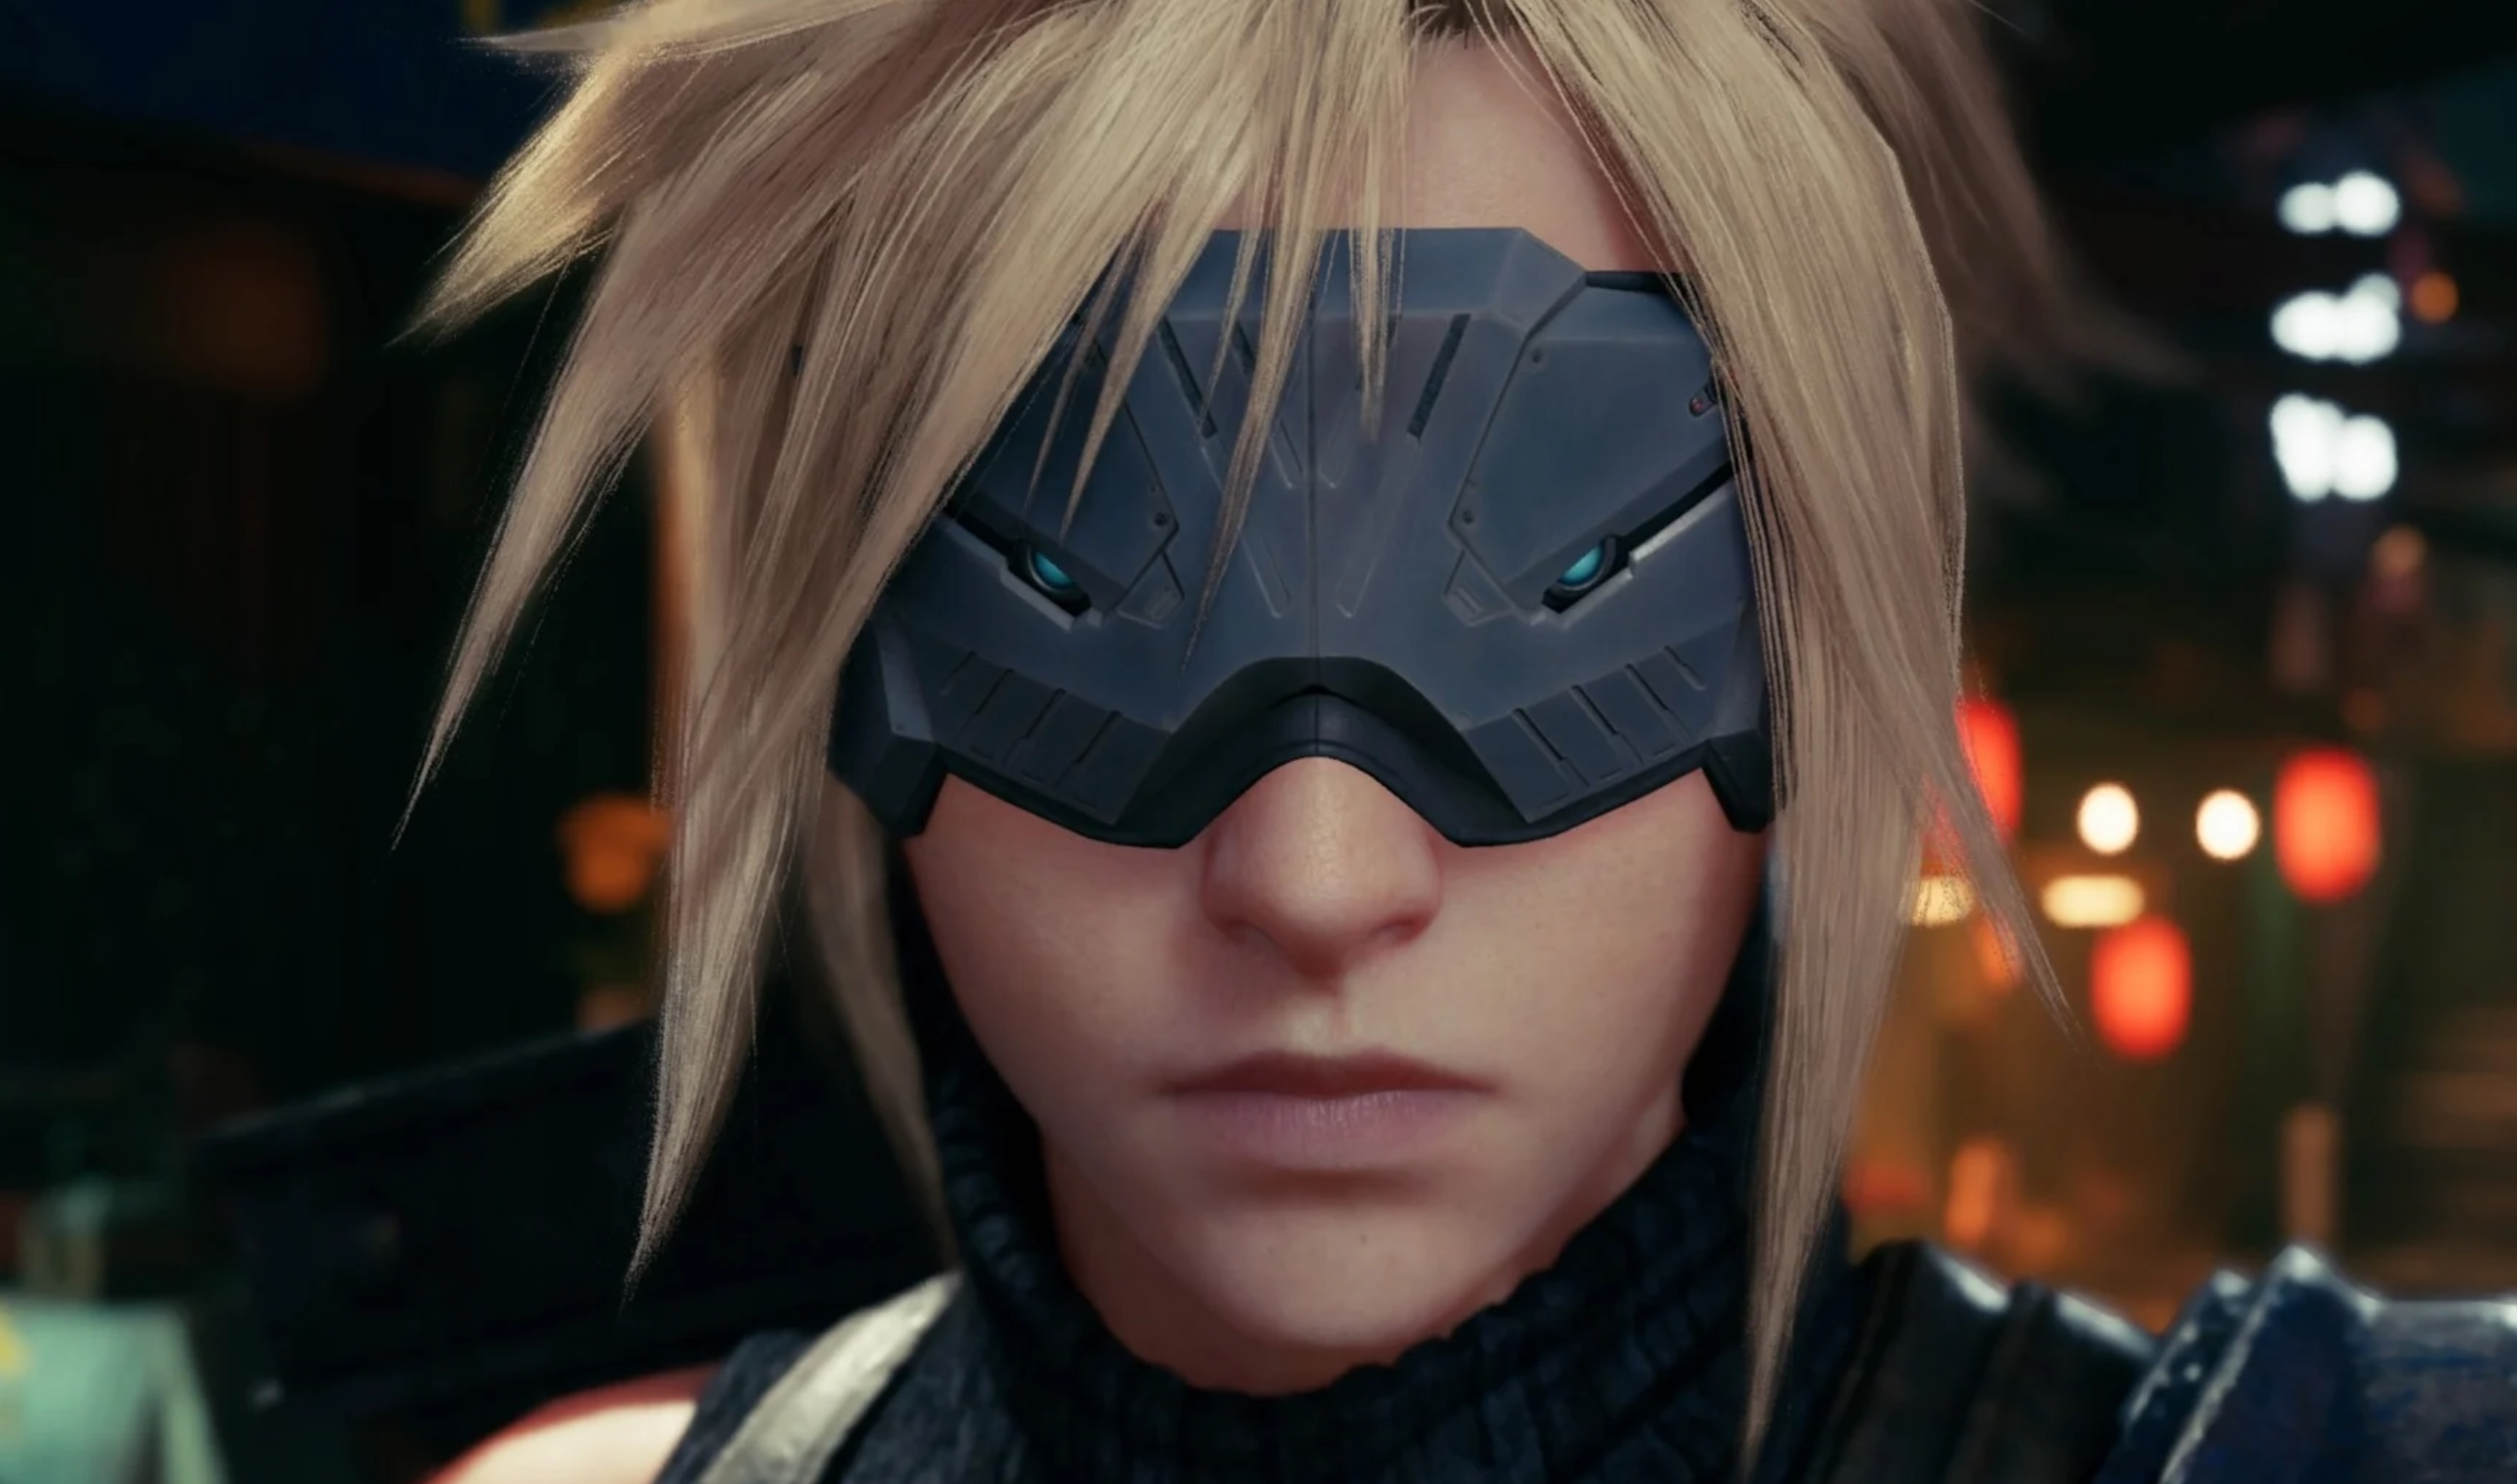 Final Fantasy VII Remake: Here's how to increase stagger to 200% for Intel Challenge 12 screenshot